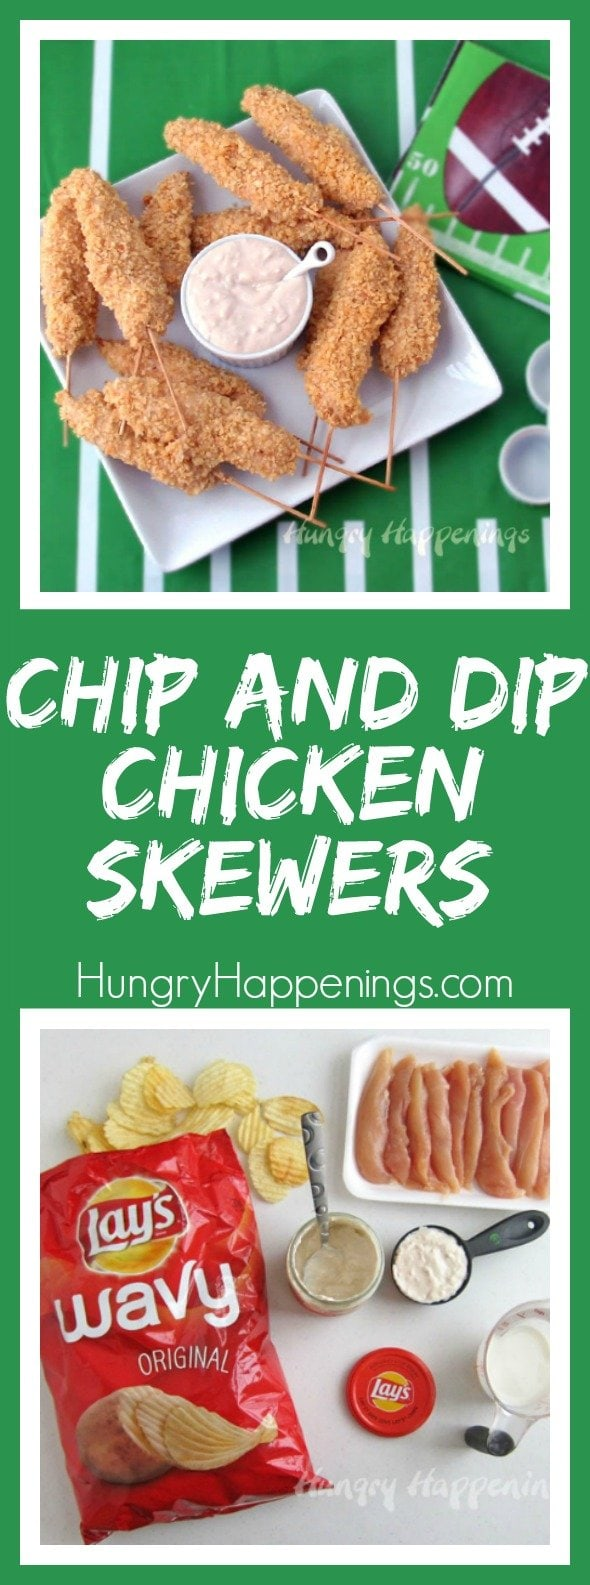 Why go through the hassle of dipping your chips in a dip and take the chance of making a mess. Instead, make these Chip and Dip Chicken Skewers and you won't just make it easier on your guests, you will create a delicious appetizer that will make everyone's mouth water.